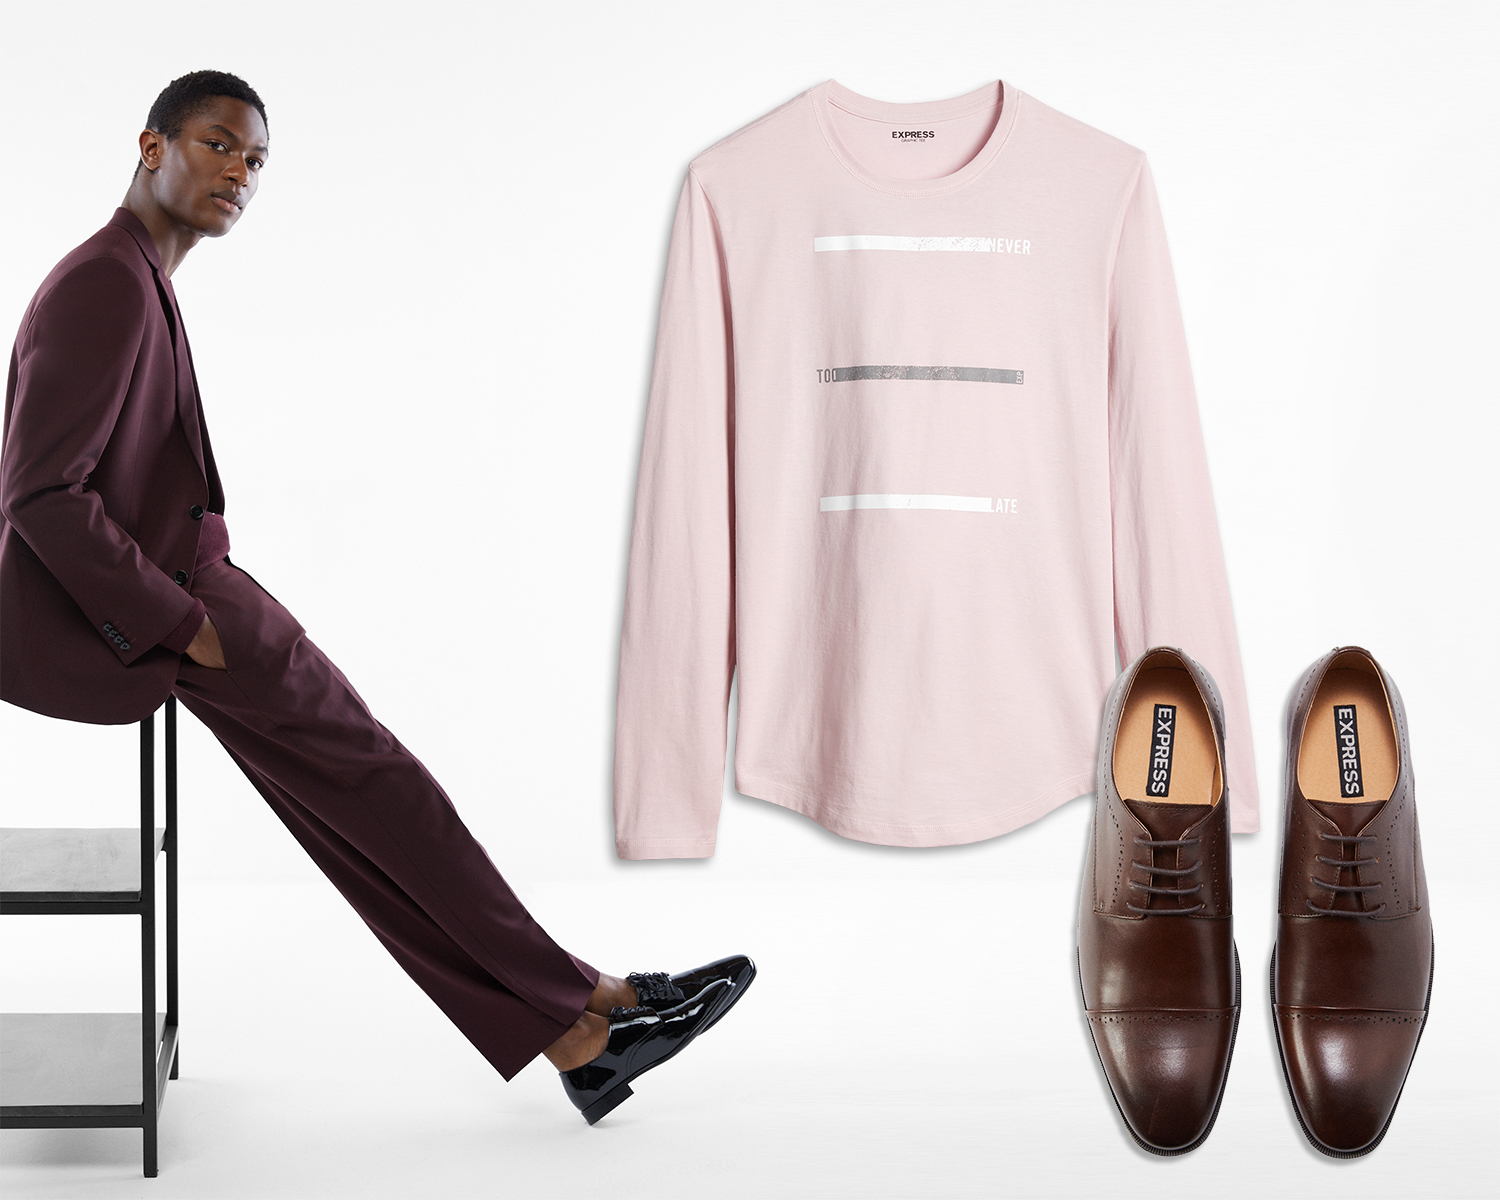 mens-burgandy-suit-long-sleeve-graphic-tee-dress-shoes